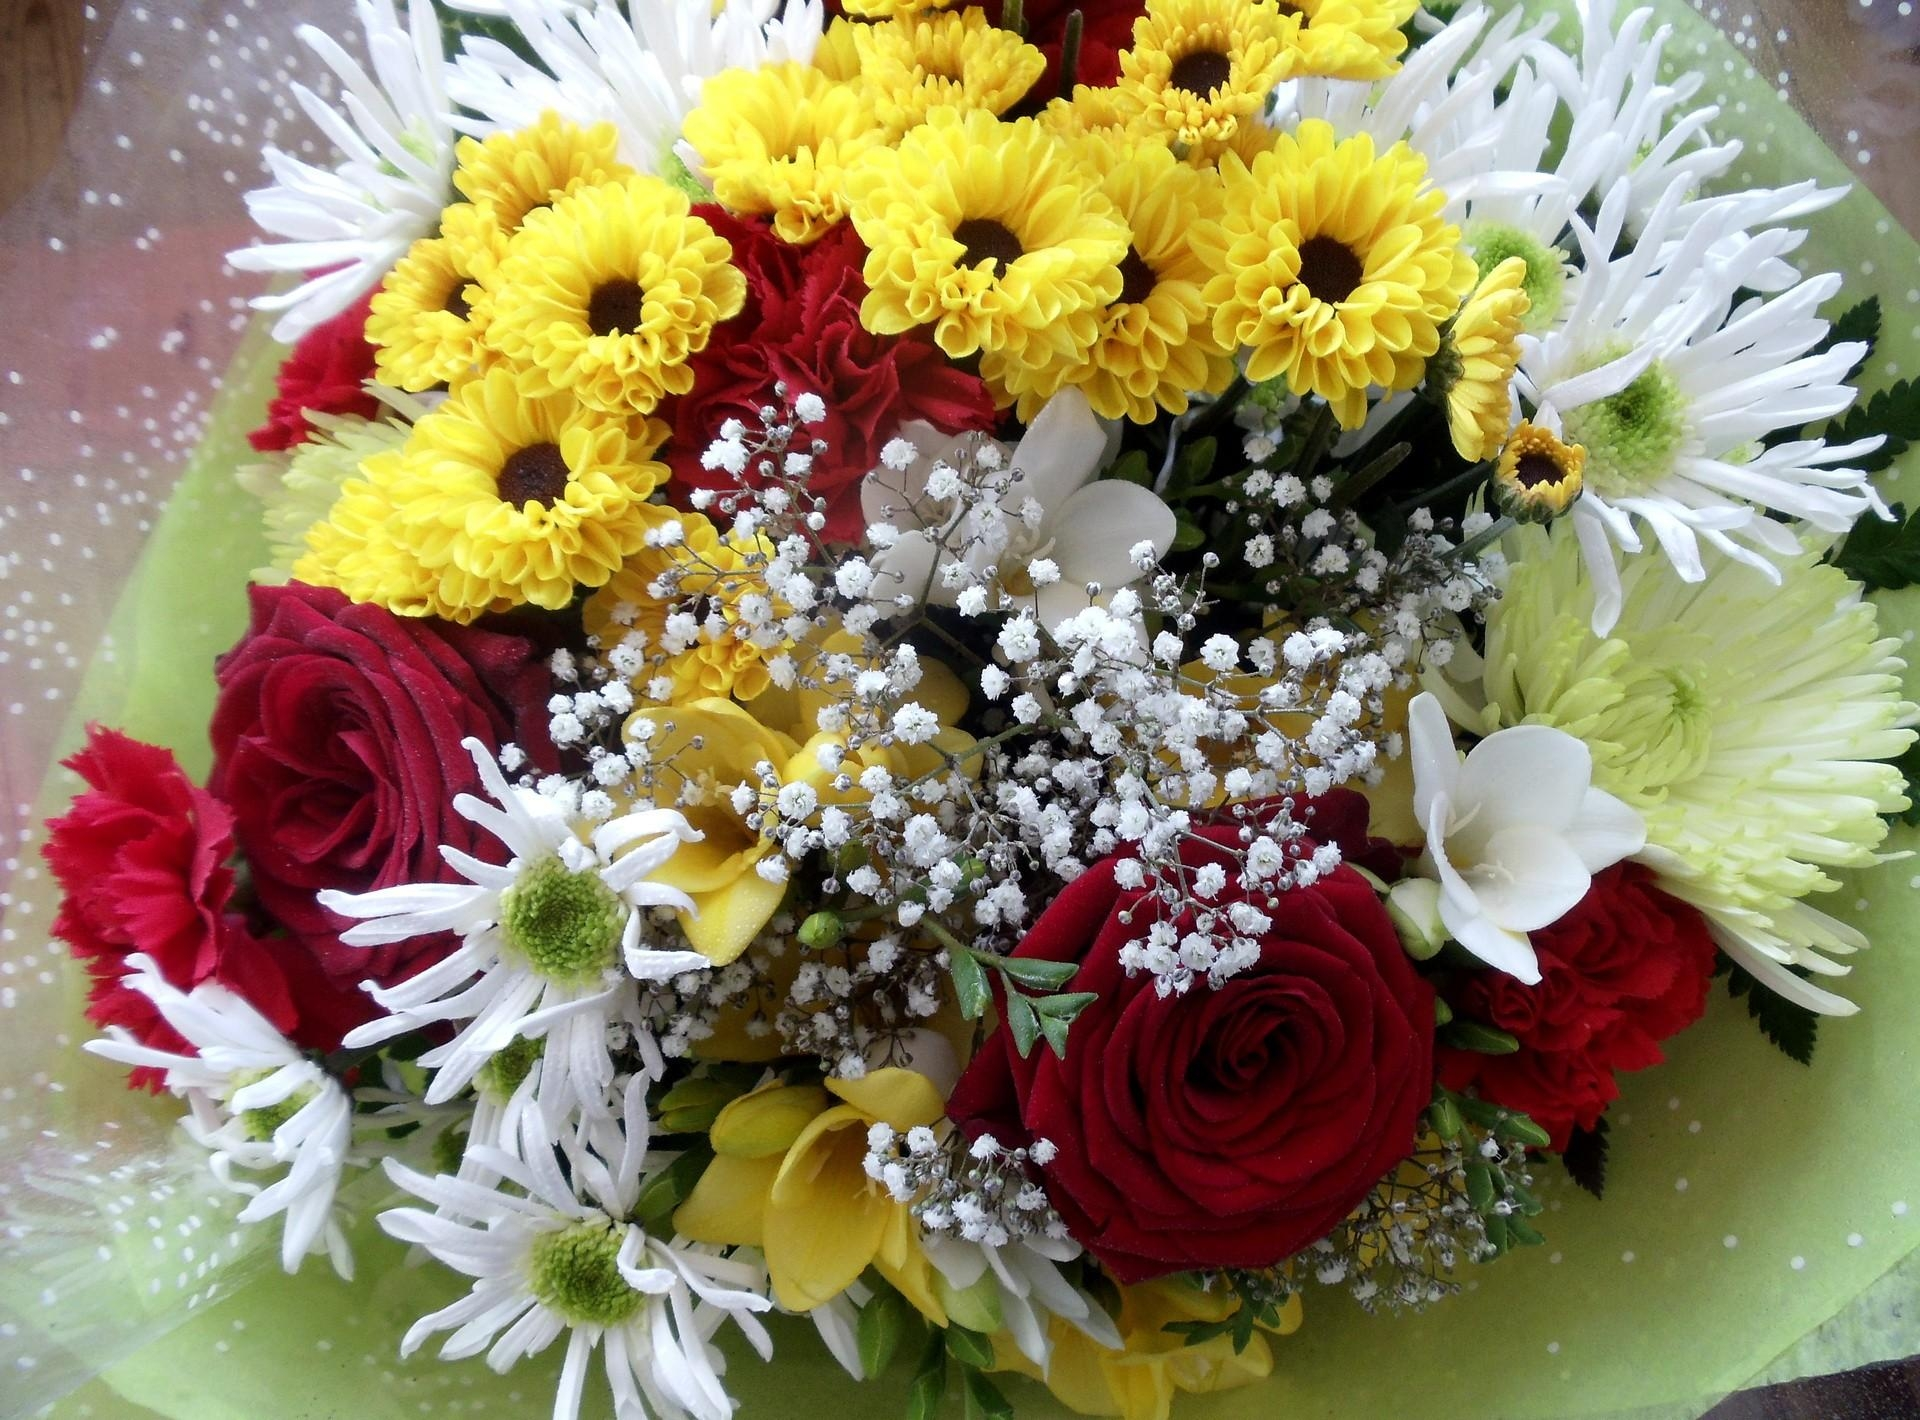 roses-chrysanthemums-carnations-gypsophila-bouquet-decor-1048764.jpg